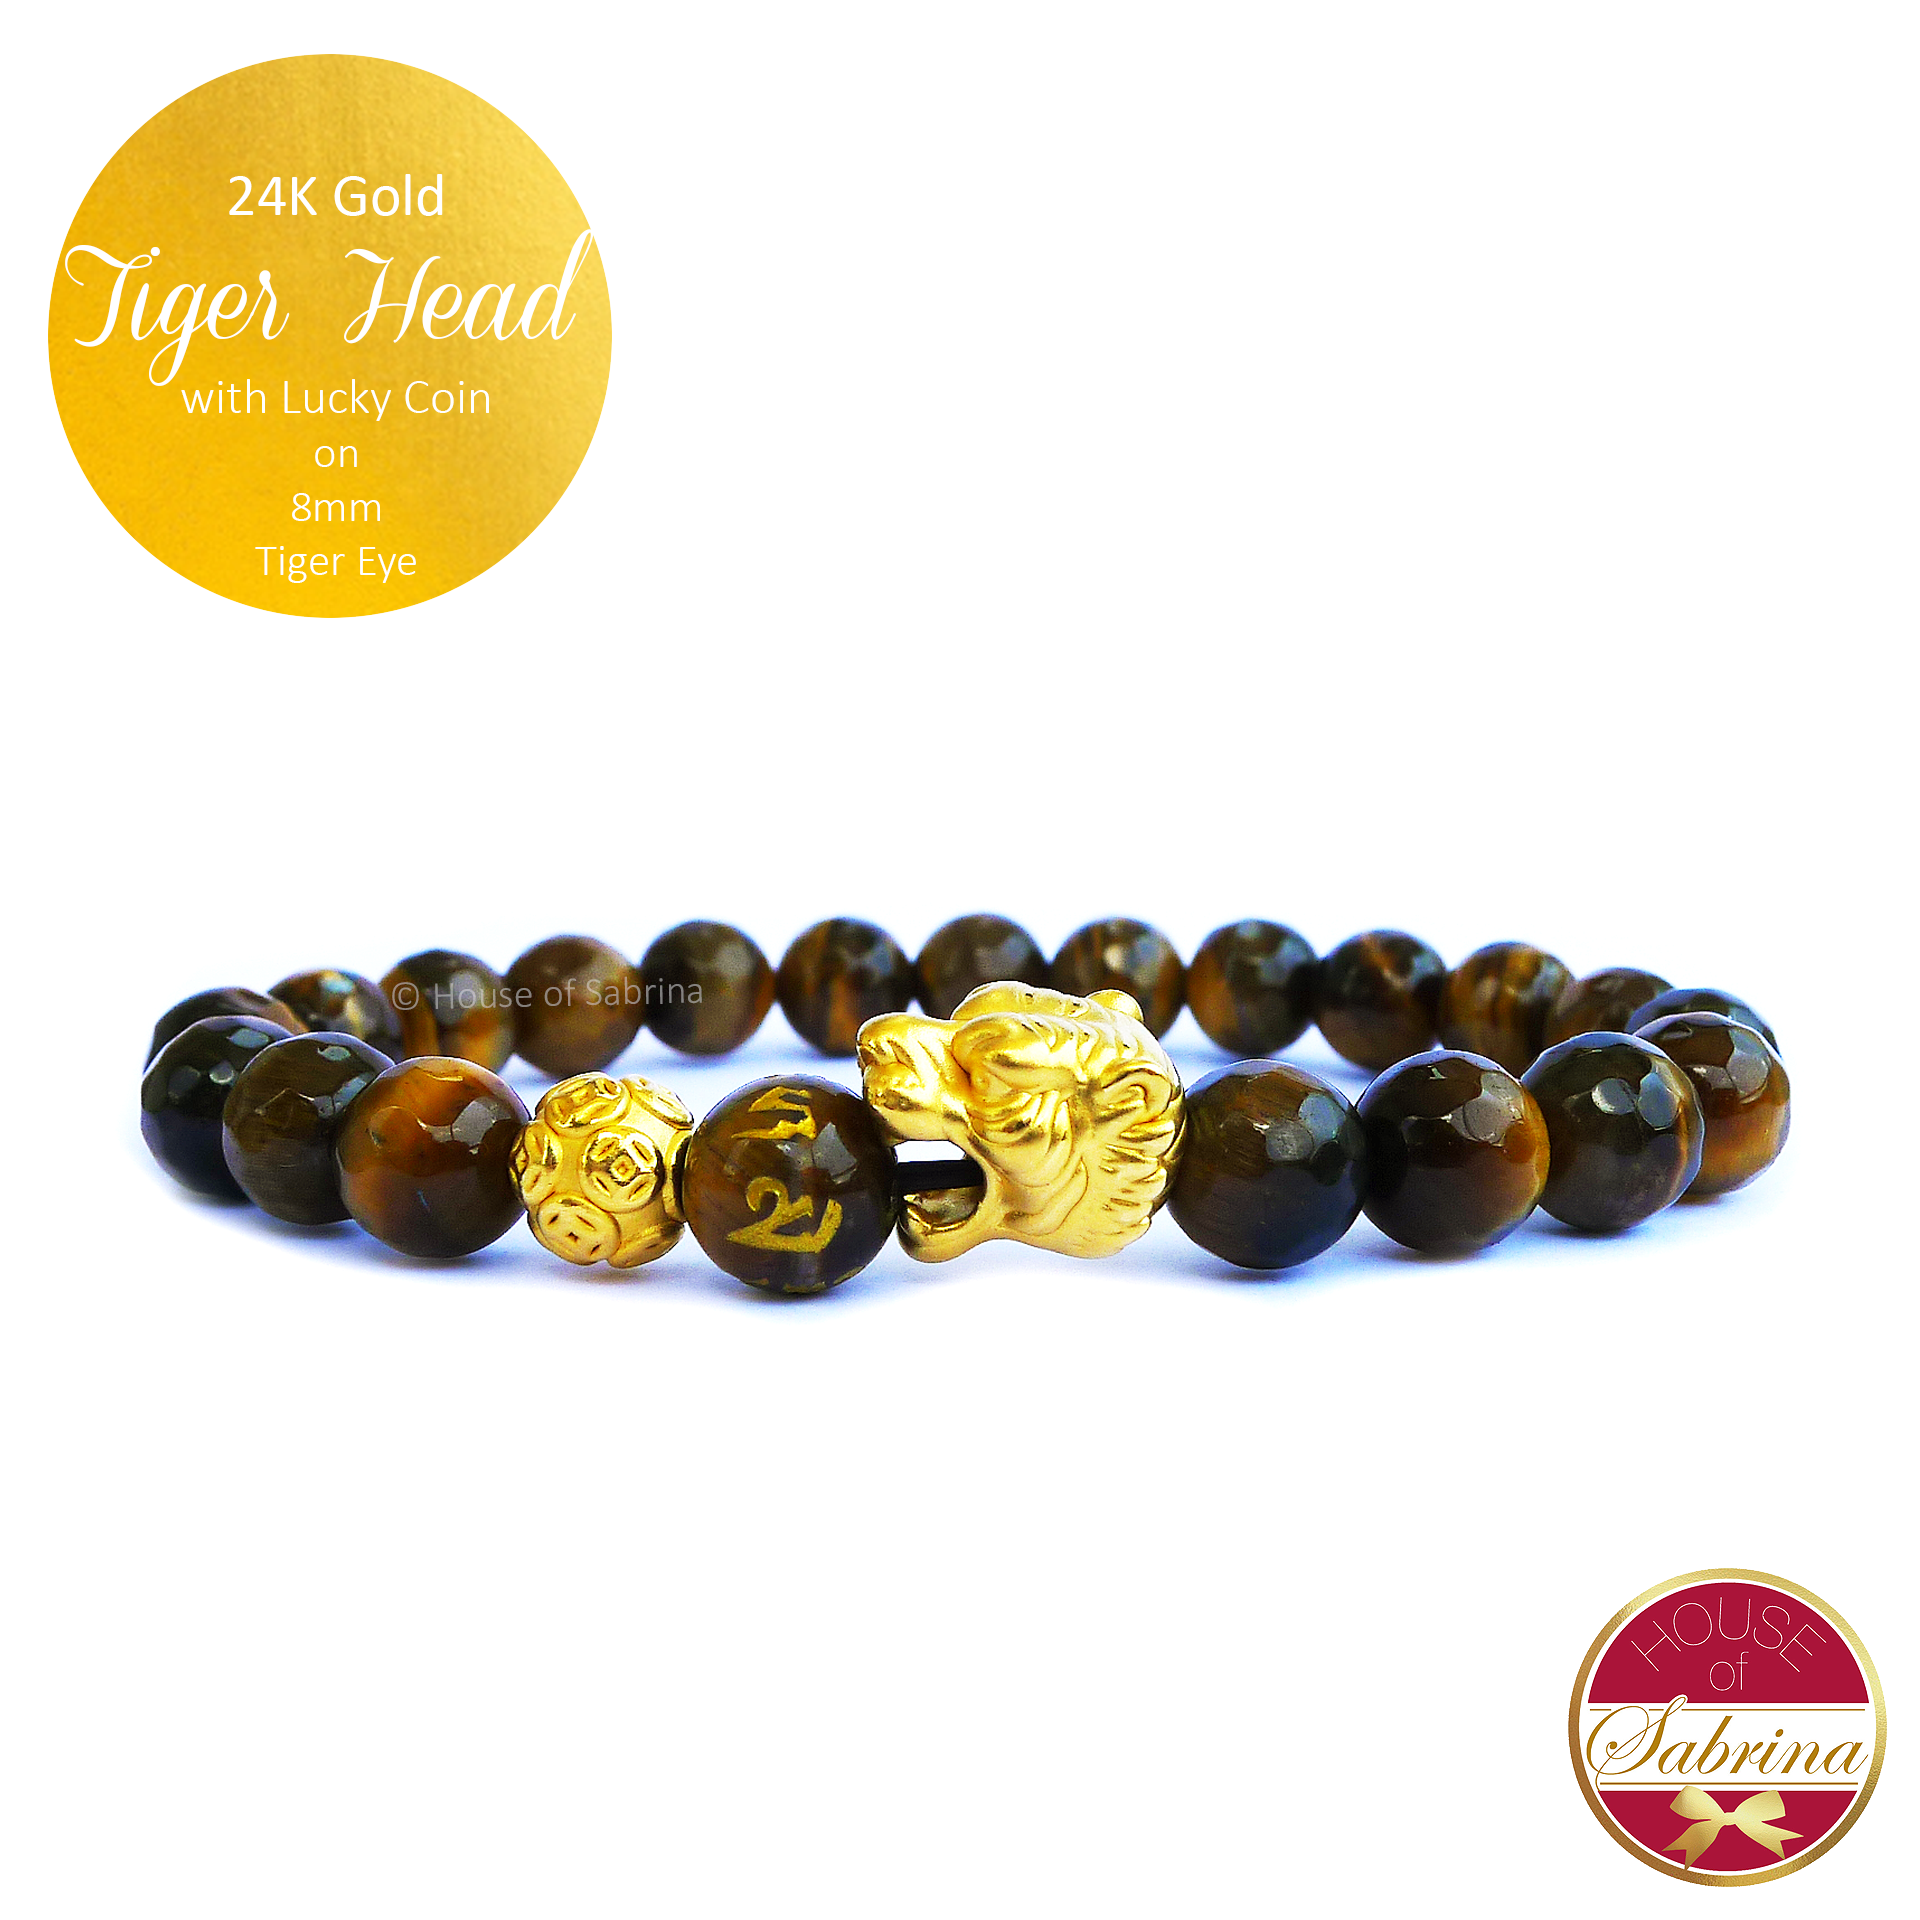 24K Gold Tiger Head with Lucky Coin on 8mm Tiger Eye Gemstone Bracelet